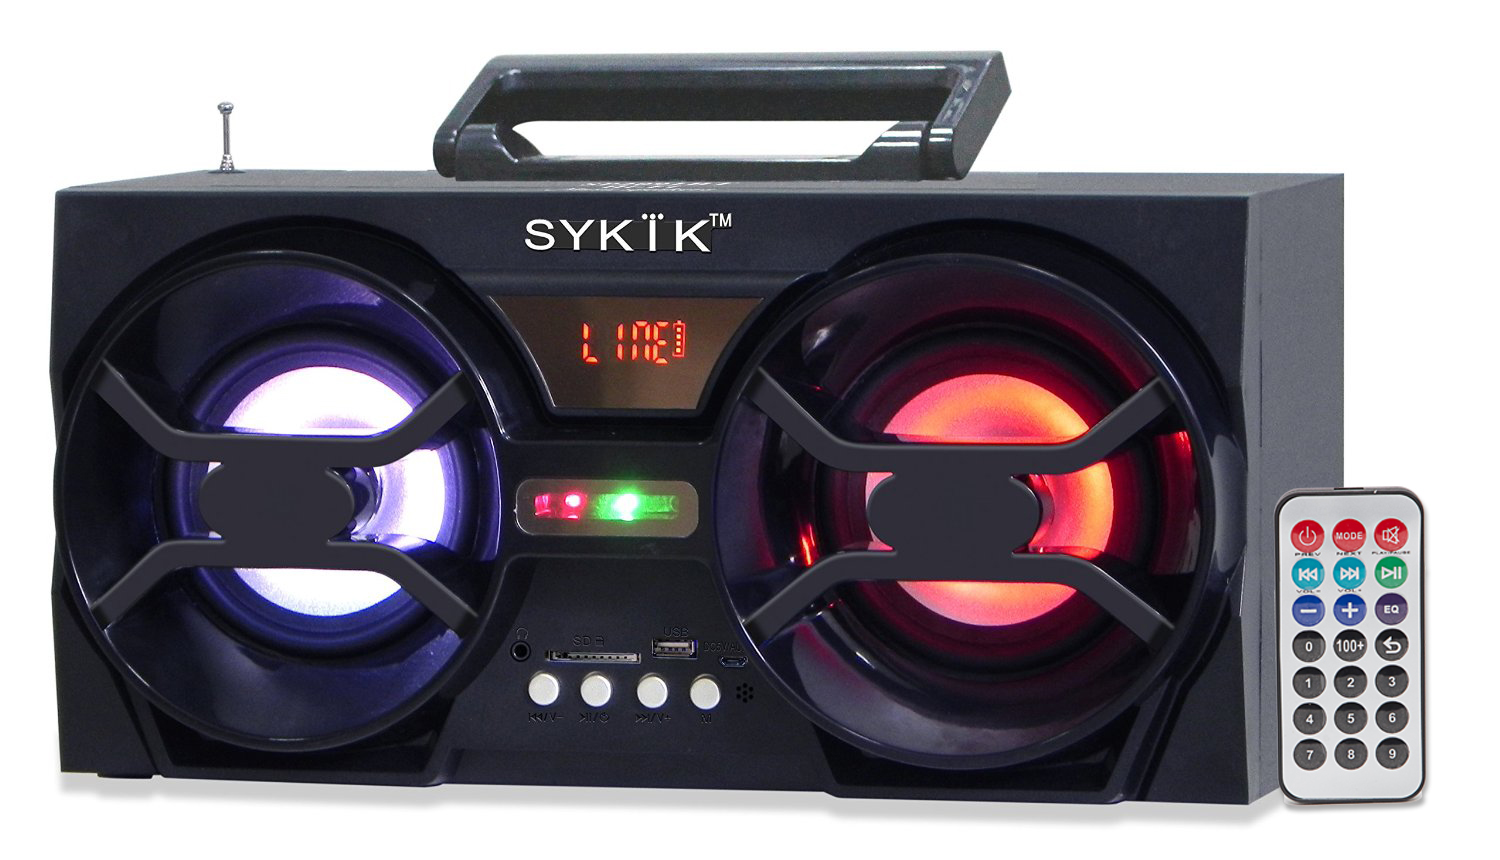 Sykik SP2091BT RB, Bluetooth Boombox with SD/MMC/USB, FM radio